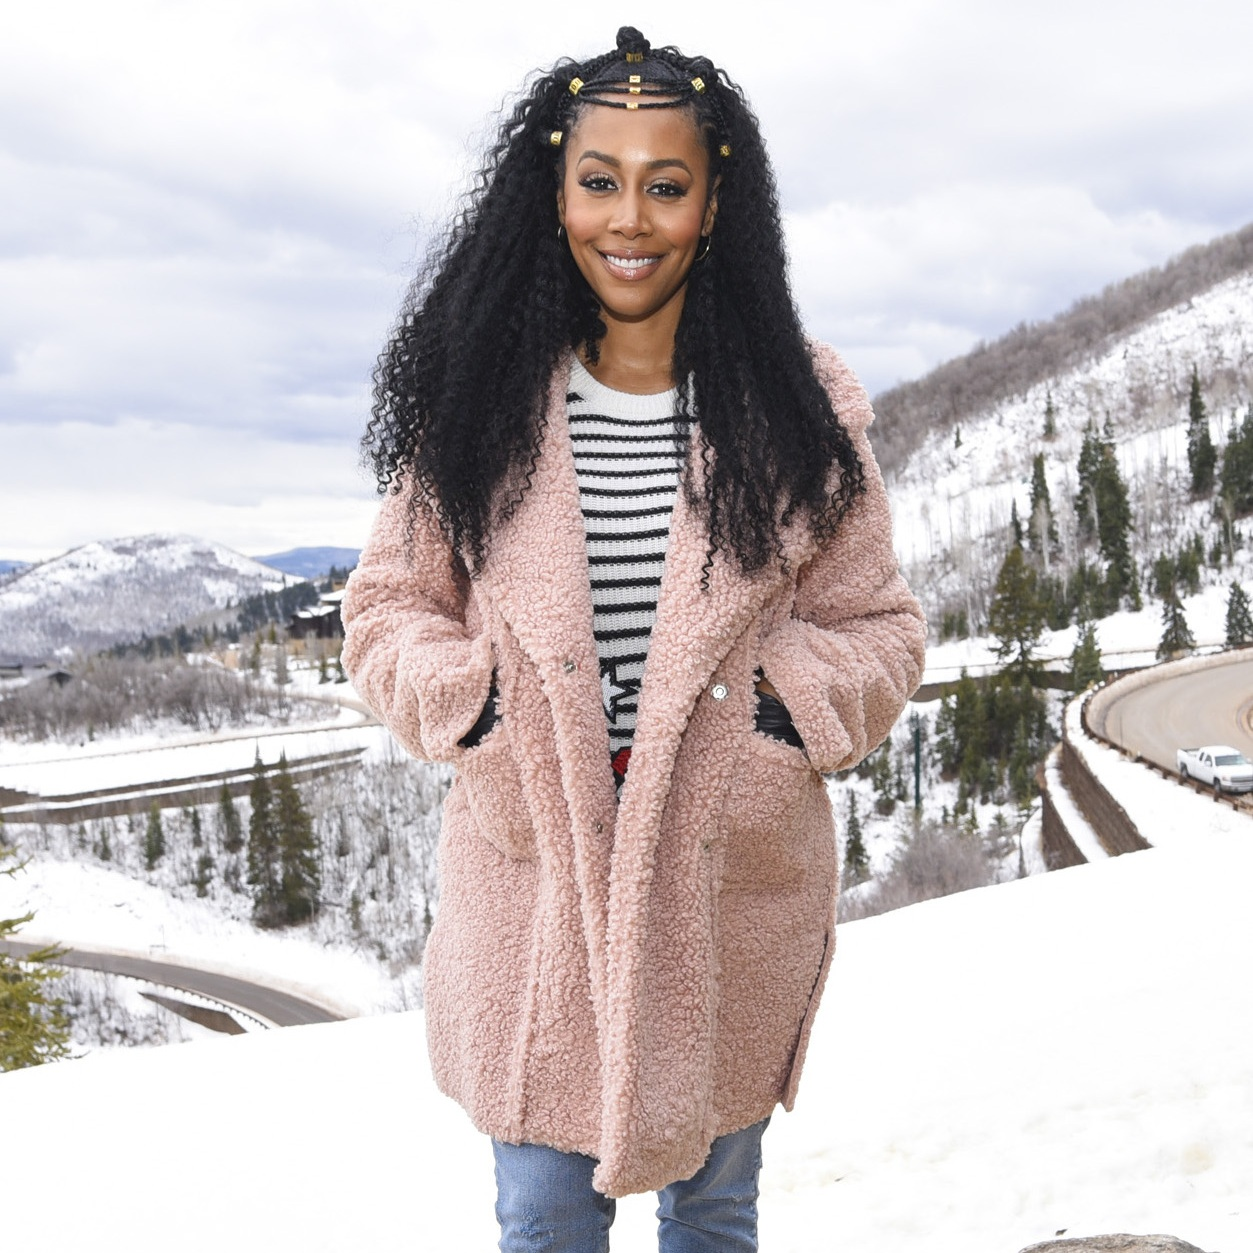 No trip to Sundance can happen without a coat. You're going to be outside, in the cold often, so you're going to want to bring not only a warm coat but one that looks great as well. Remember, coats can be statement pieces so don't shy away from a head turner! -